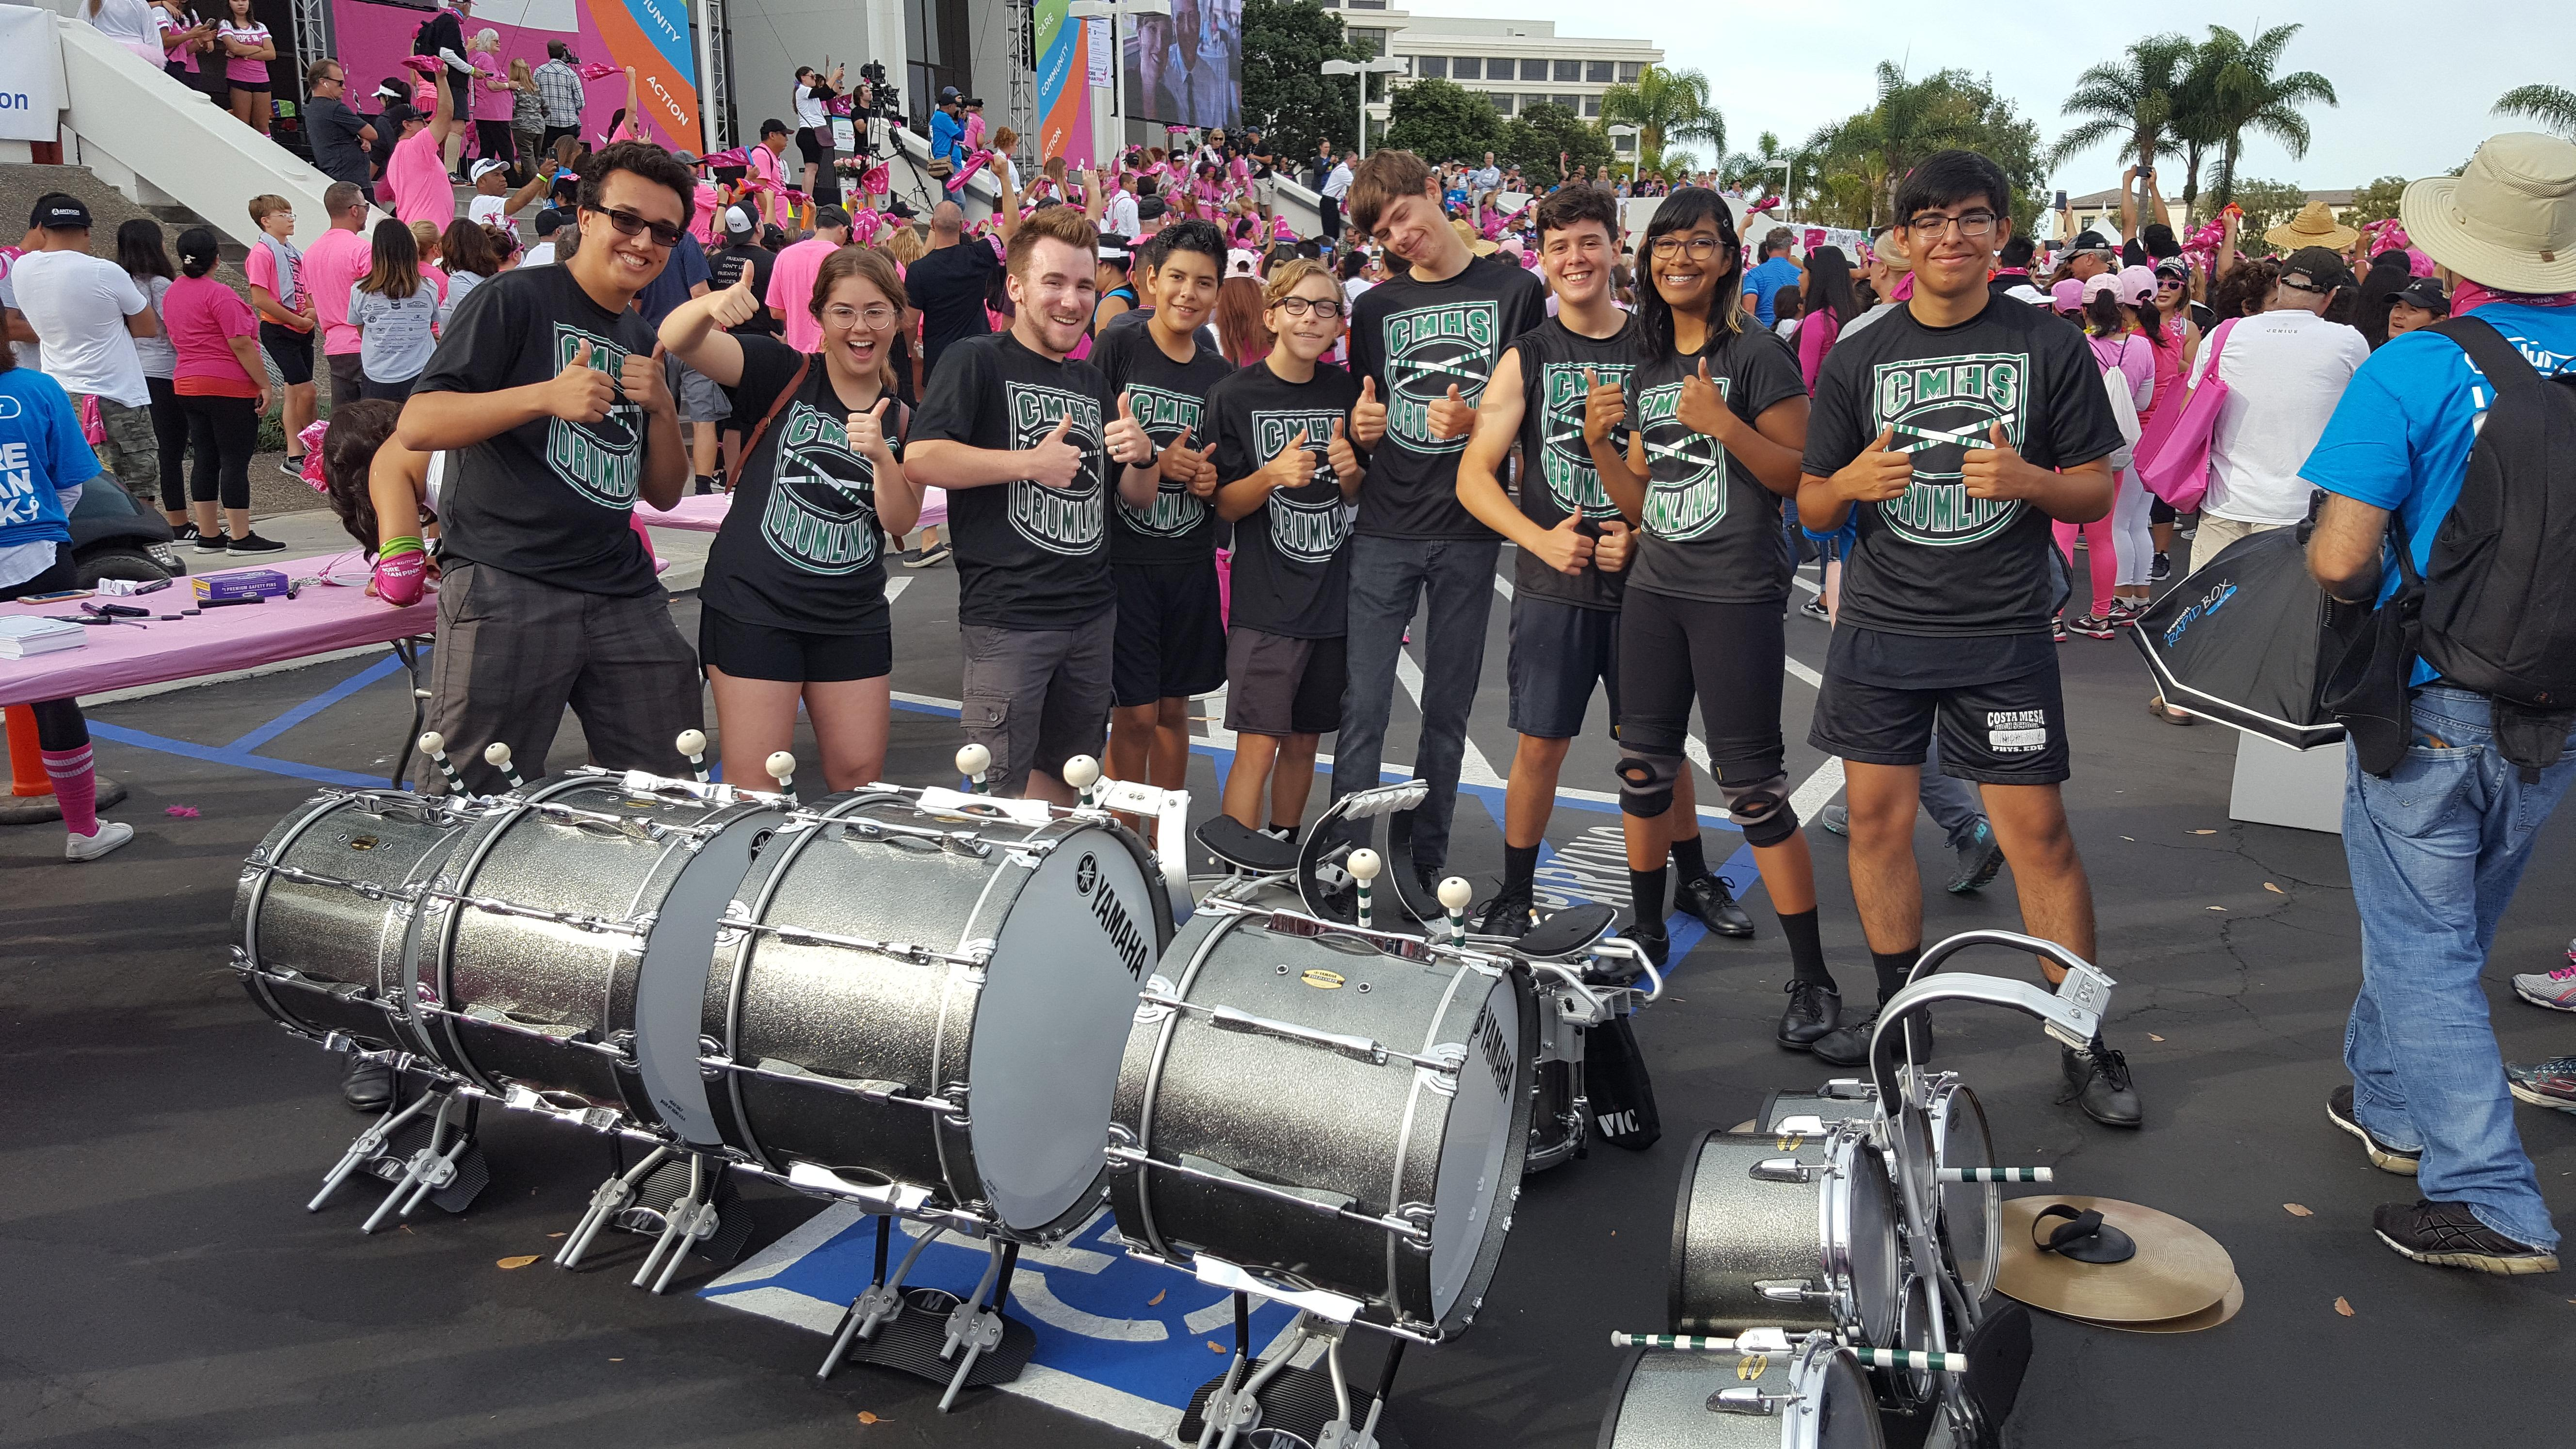 drumline at walk for breast cancer event